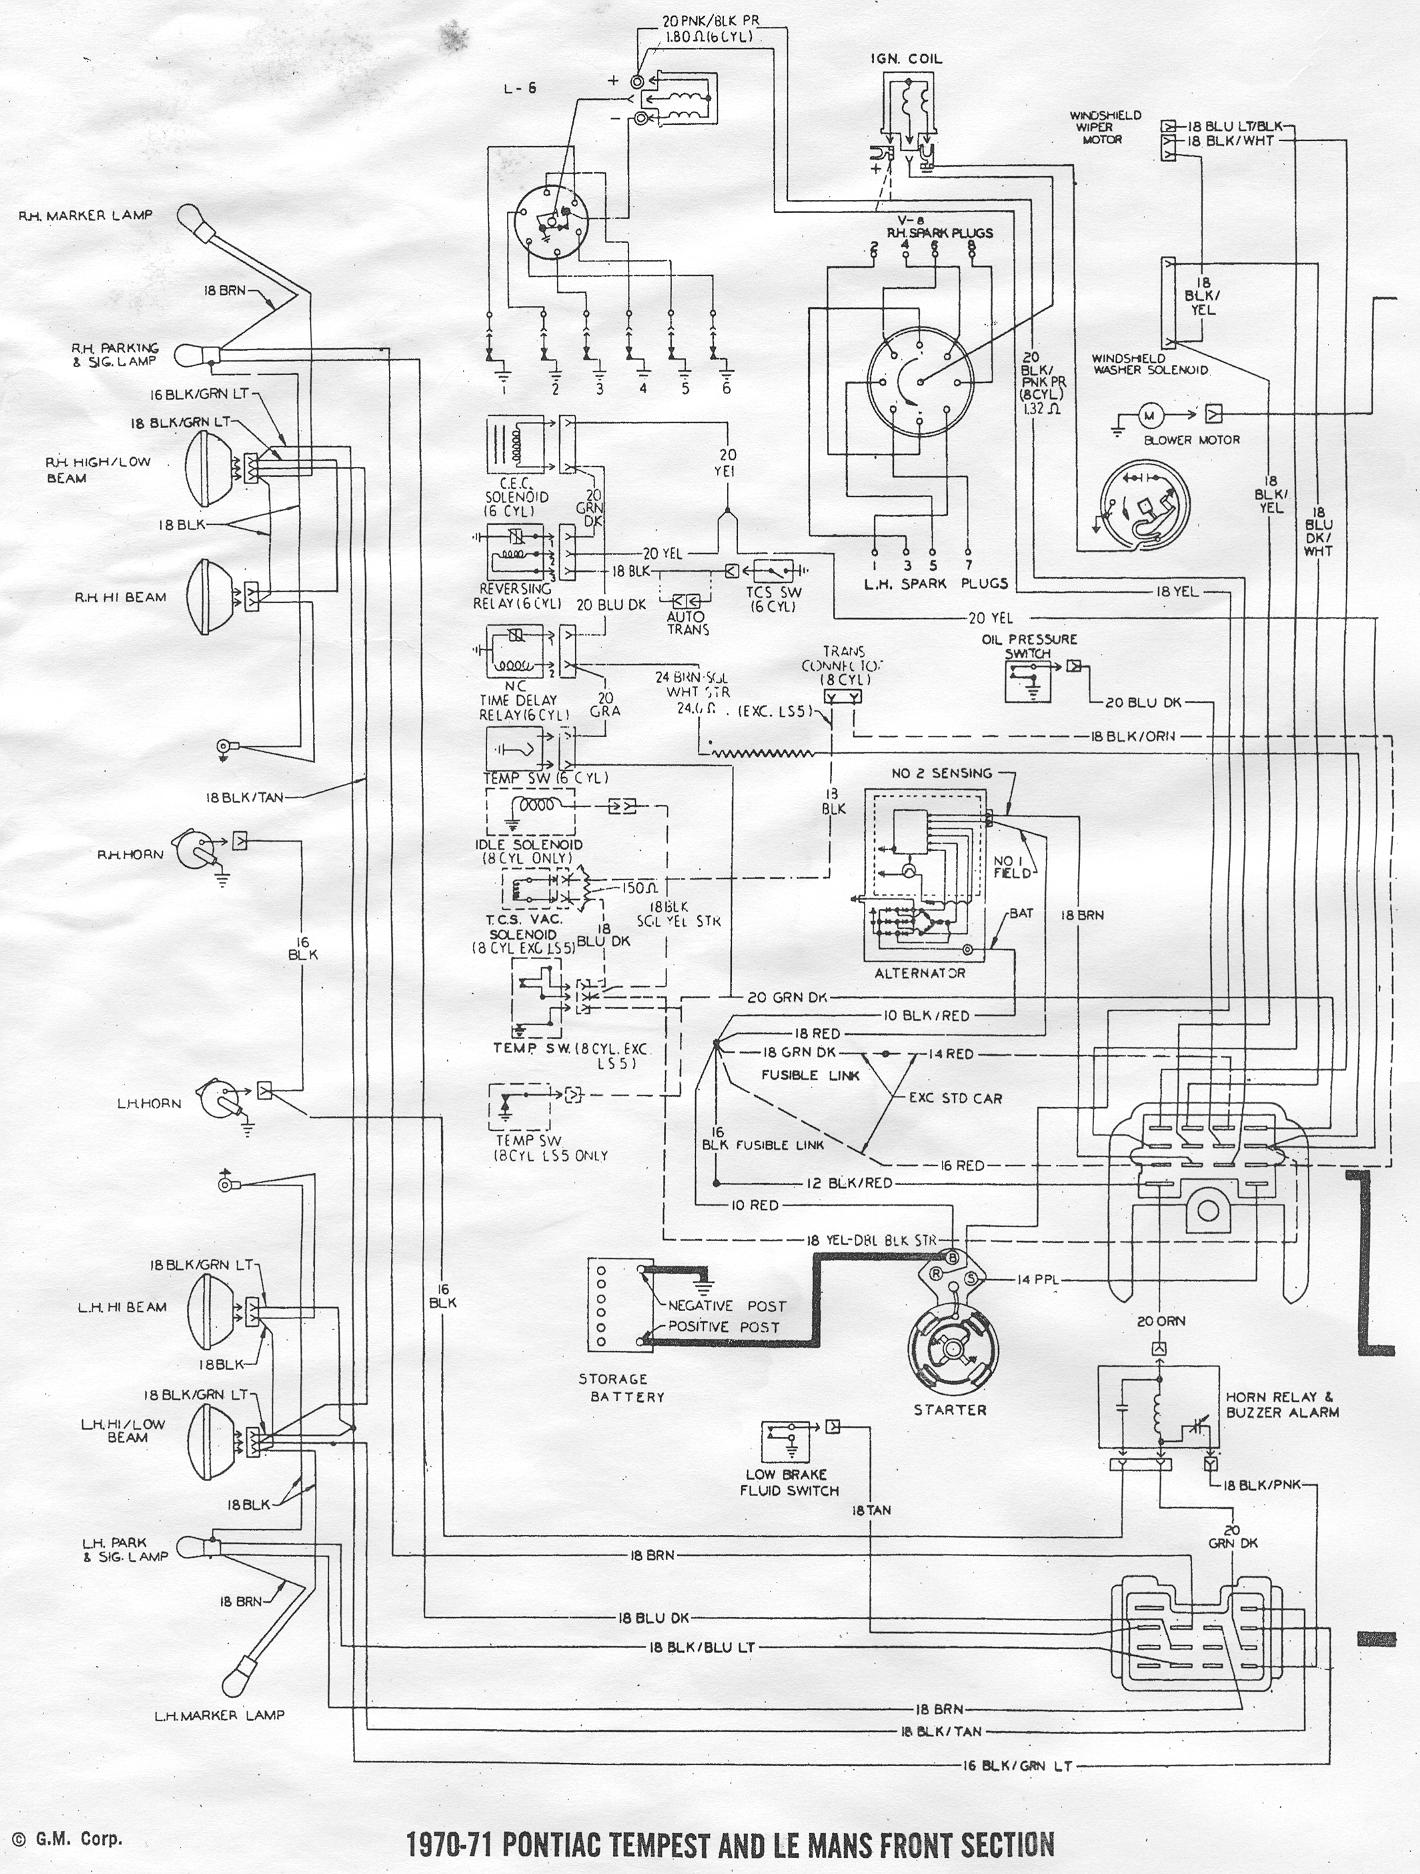 Excellent pressure sensor symbol schematic images wiring diagram